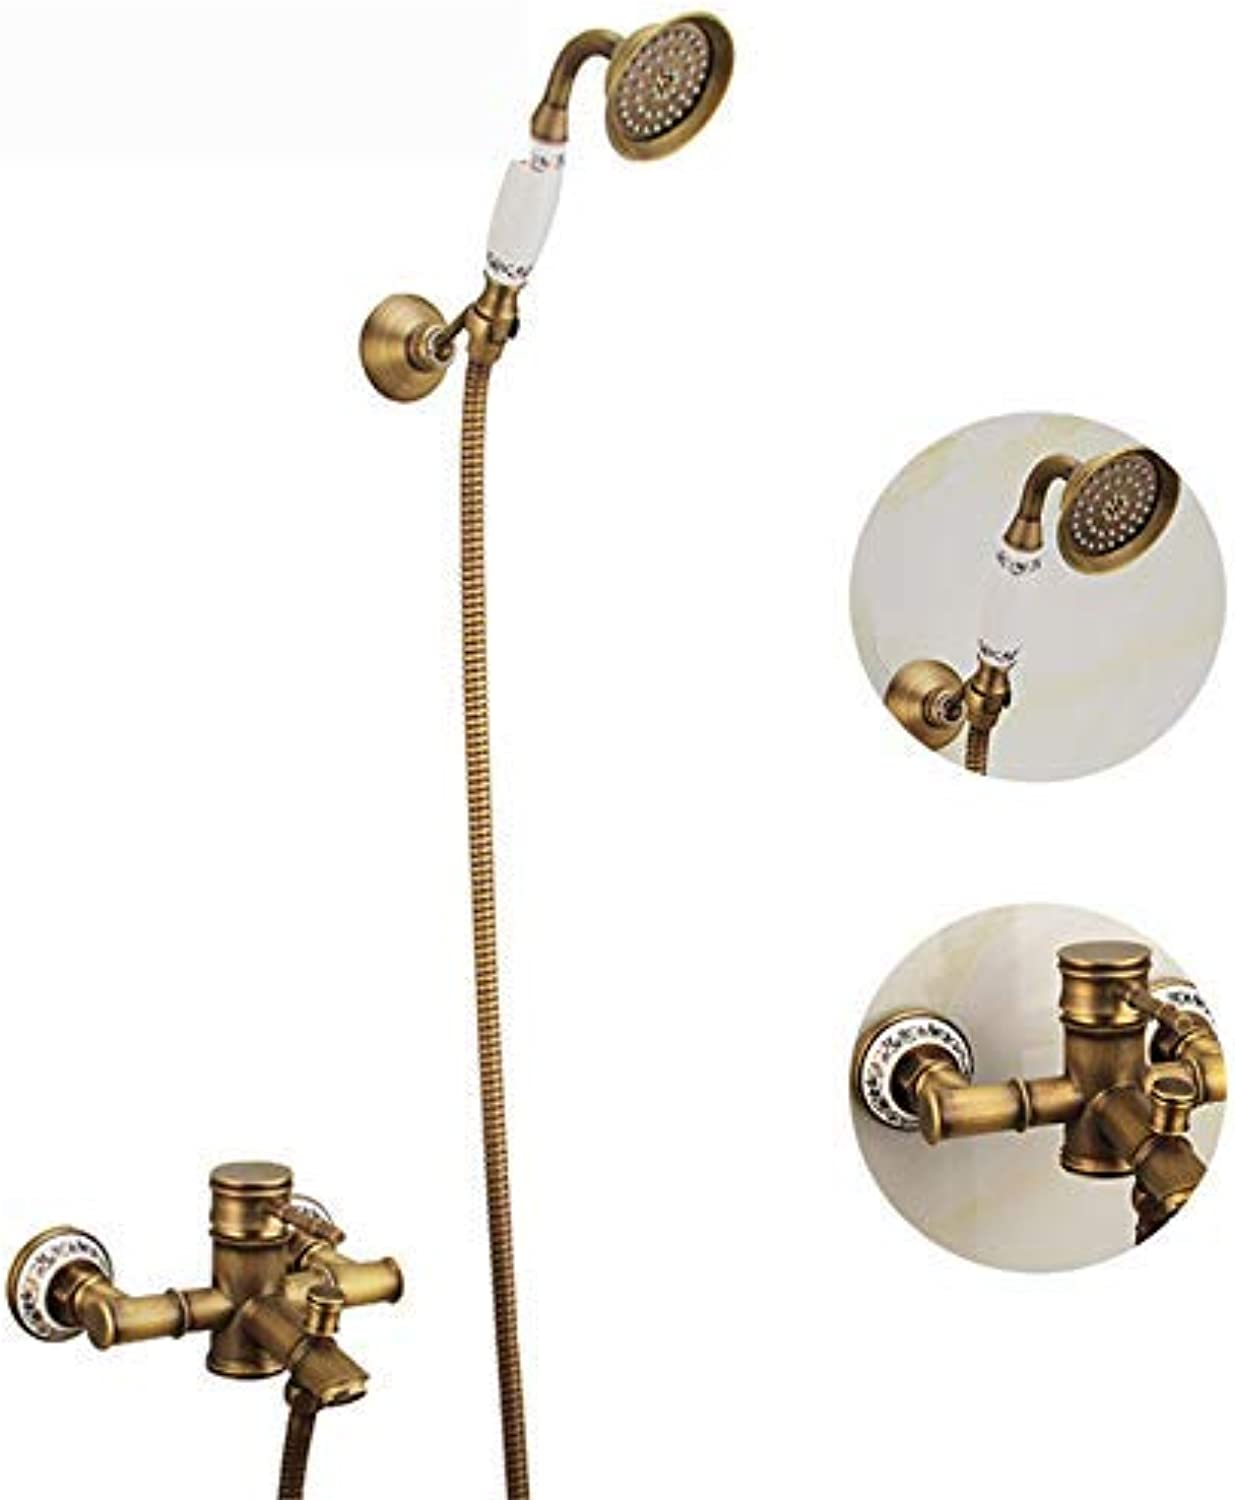 Janitorial & Sanitation Supplies Janitorial & Sanitation Supplies Lpophy Bathroom Sink Mixer Taps Faucet Bath Waterfall Cold and Hot Water Tap for Washroom Bathroom and Kitchen Stainless Steel Double Hole Hot and Cold Oblique Seven Tube